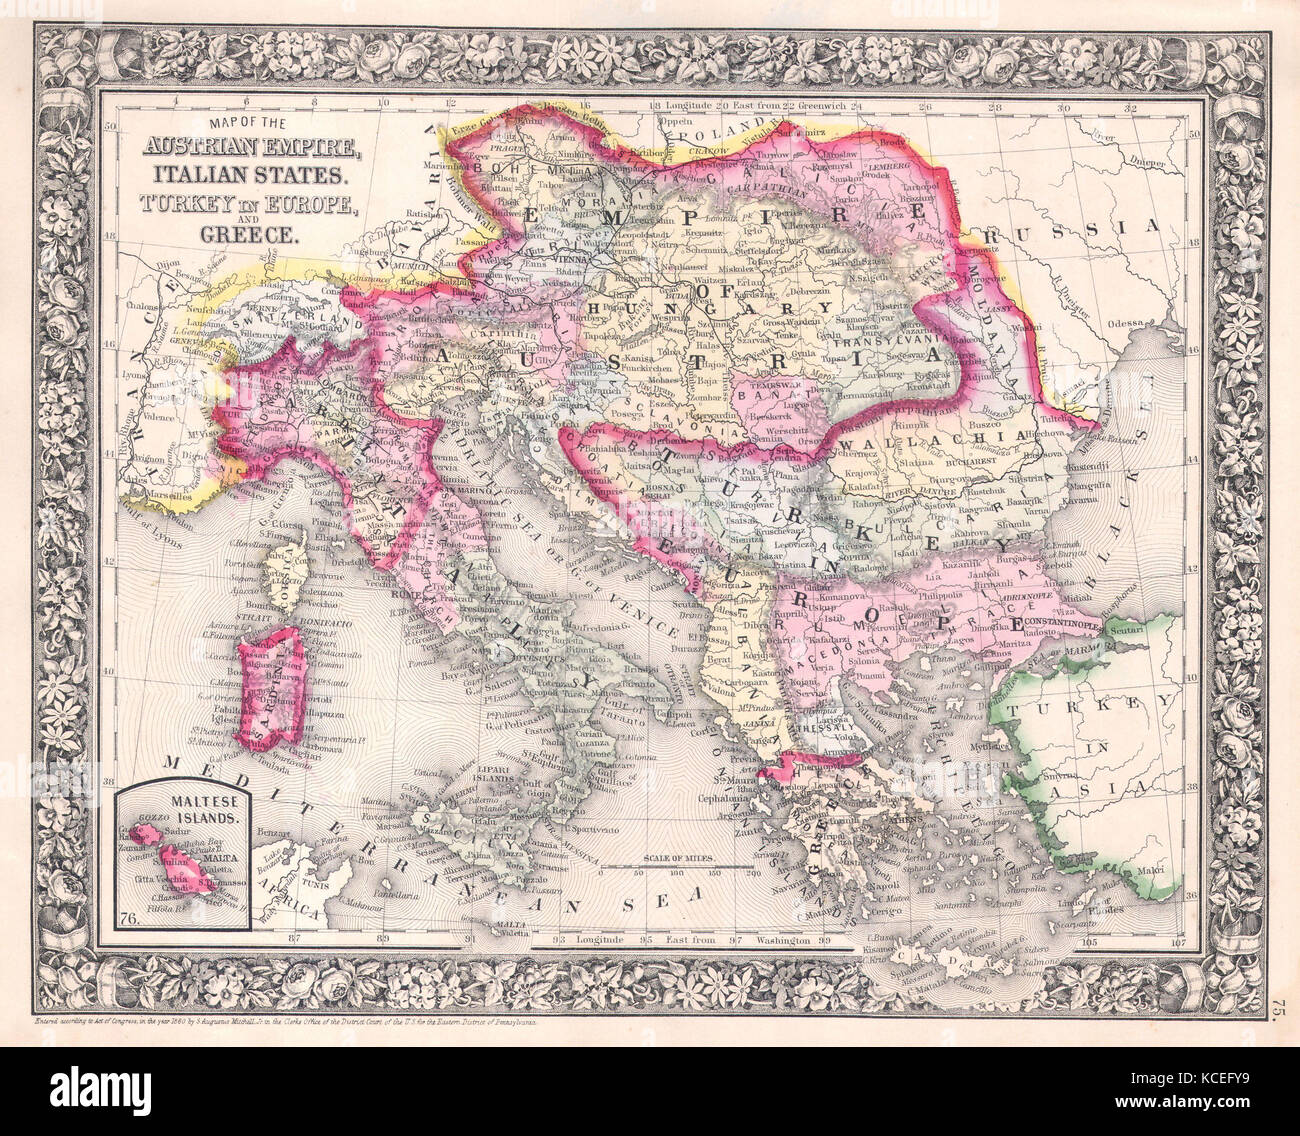 1864, Mitchell Map of Italy, Greece and the Austrian Empire - Stock Image